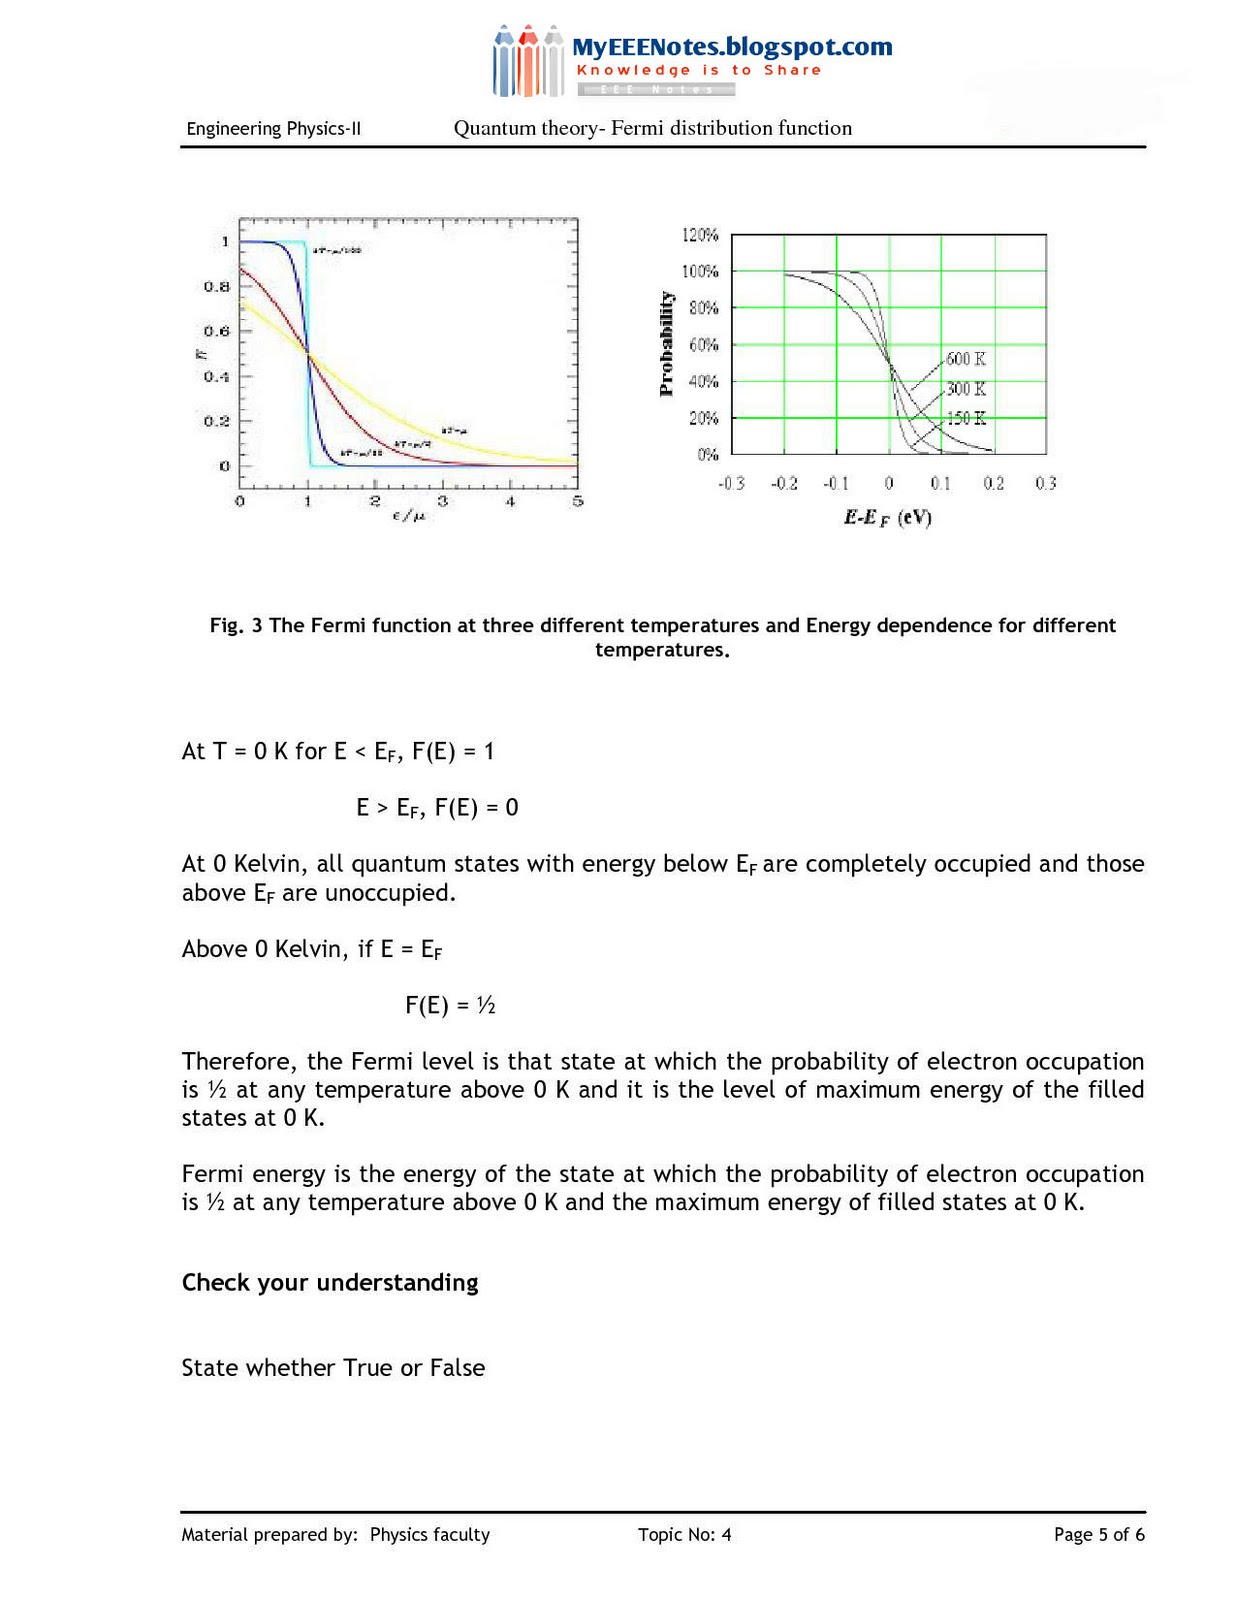 Engineering physics ii unit 1 quantum theroy fermi engineering physics ii unit 1 quantum theroy fermi distribution function notes malvernweather Gallery